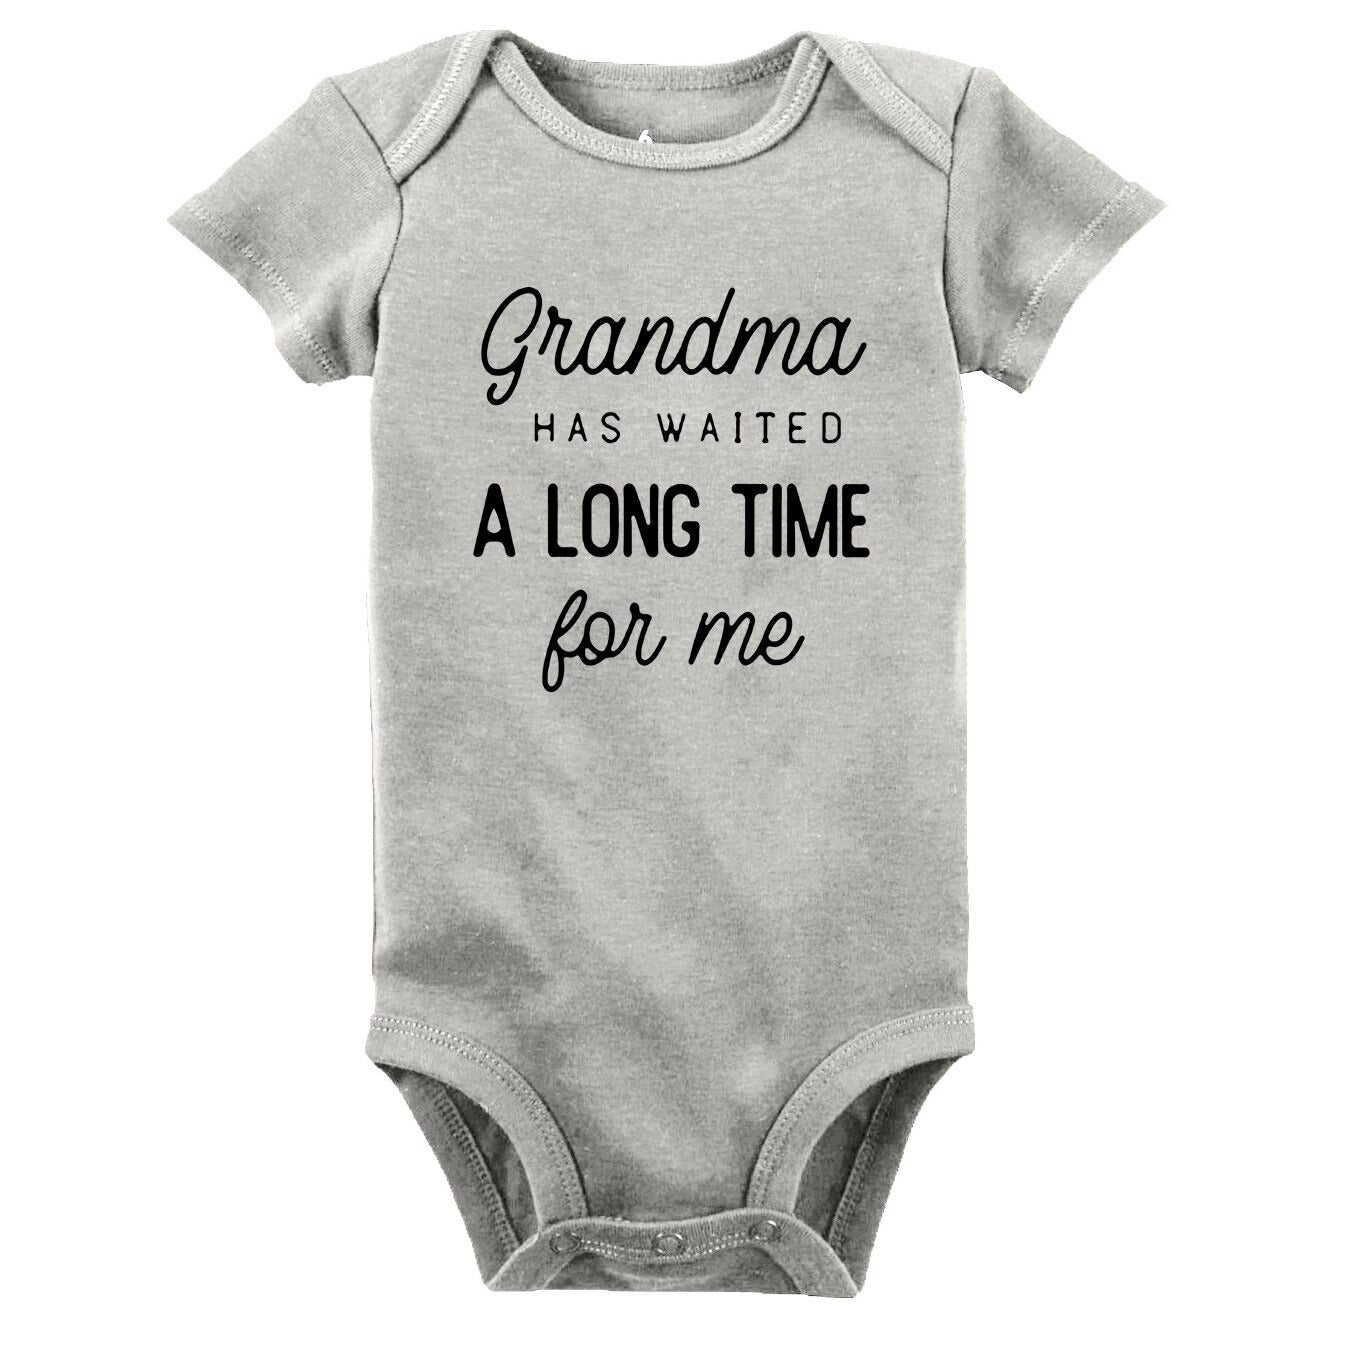 ong-time-letter-printing-new-born-baby-c_description-9